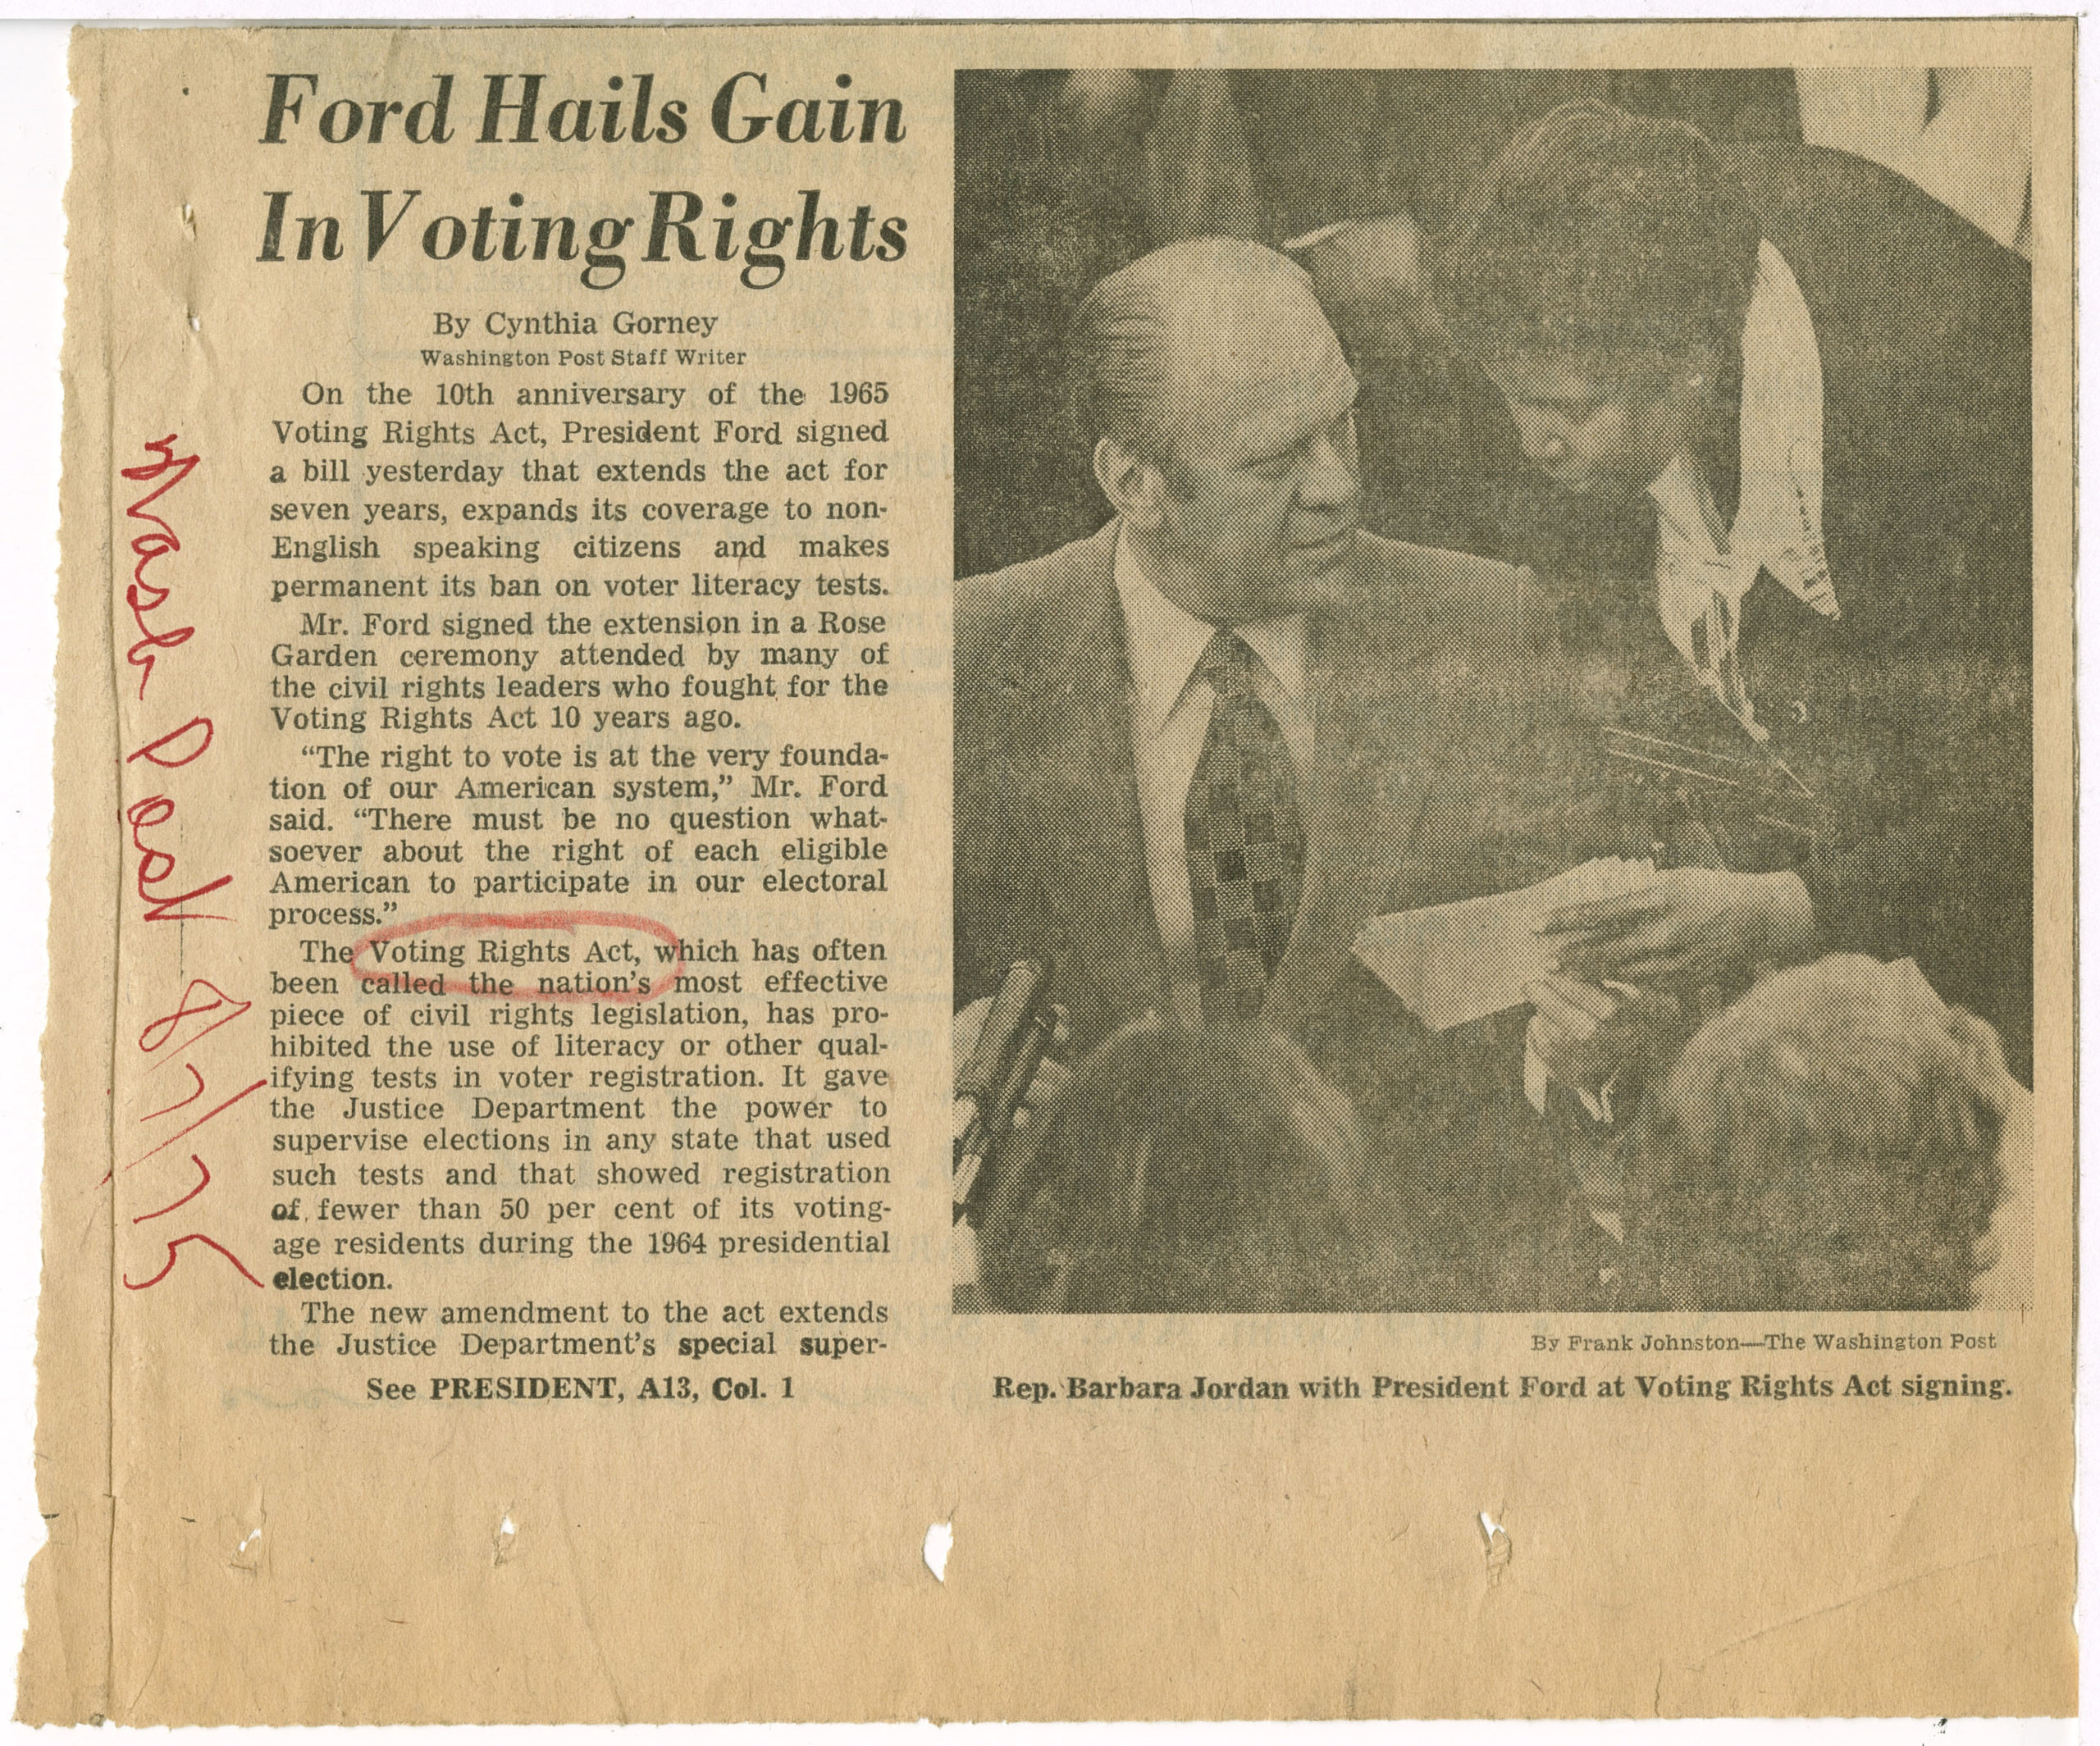 Ford Hails Gain In Voting Rights, Washington Post1975 August 7Johnson Publishing Company Clippings File Collection